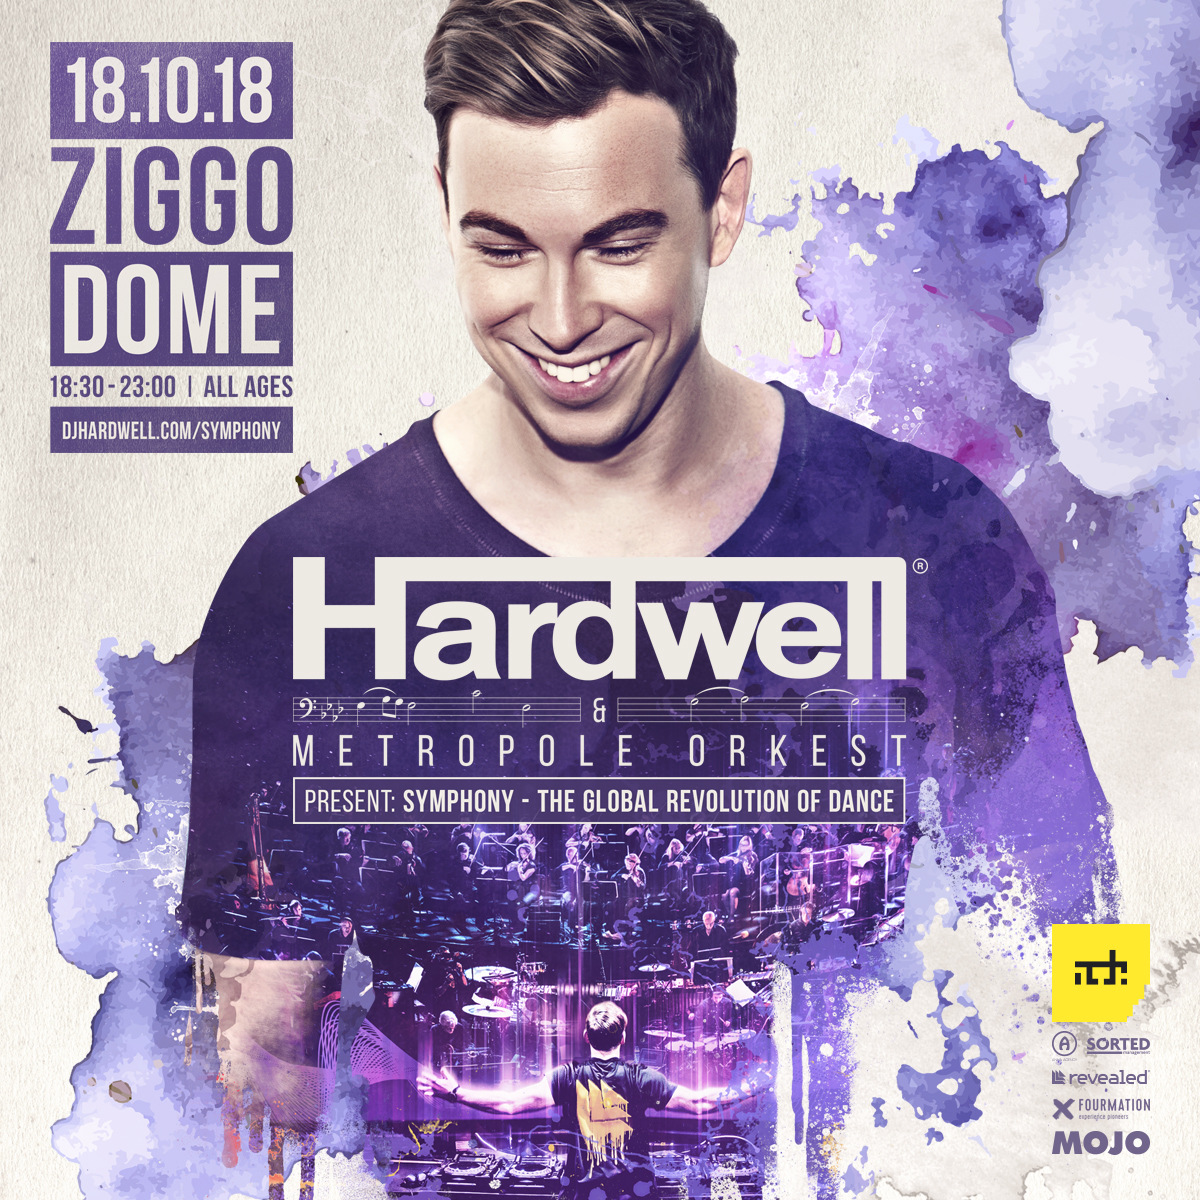 Hardwell & Metropole Orchestra - Symphony - The Global Revolution of Dance, 1080p Stream - 18-Oct-2018